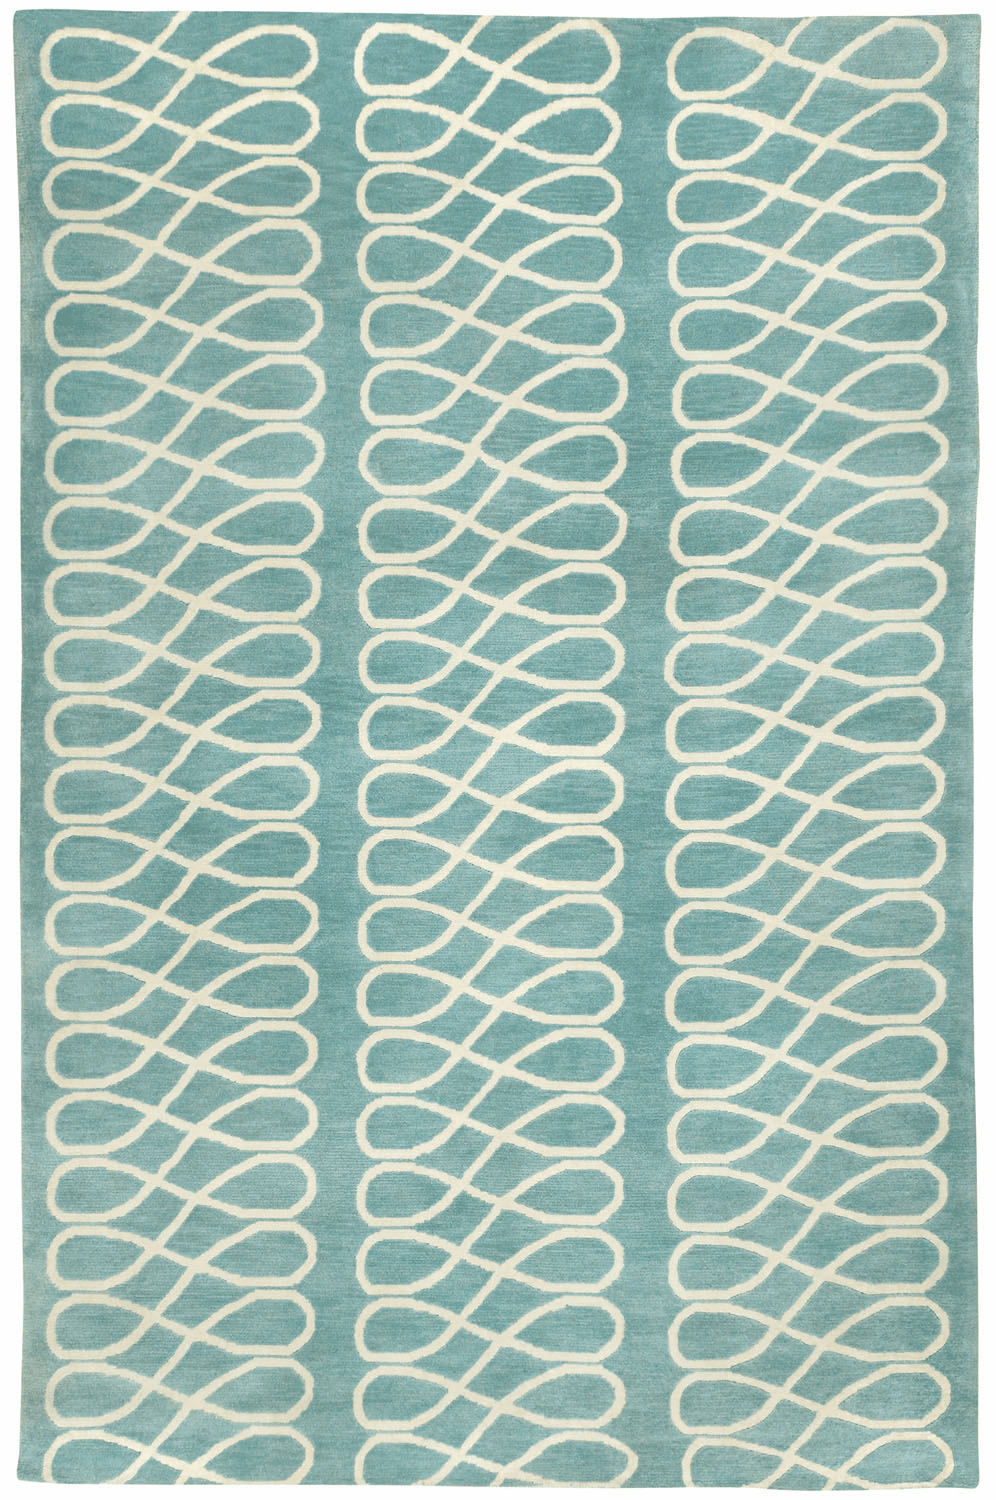 Hand Knotted Pale Blue Rug